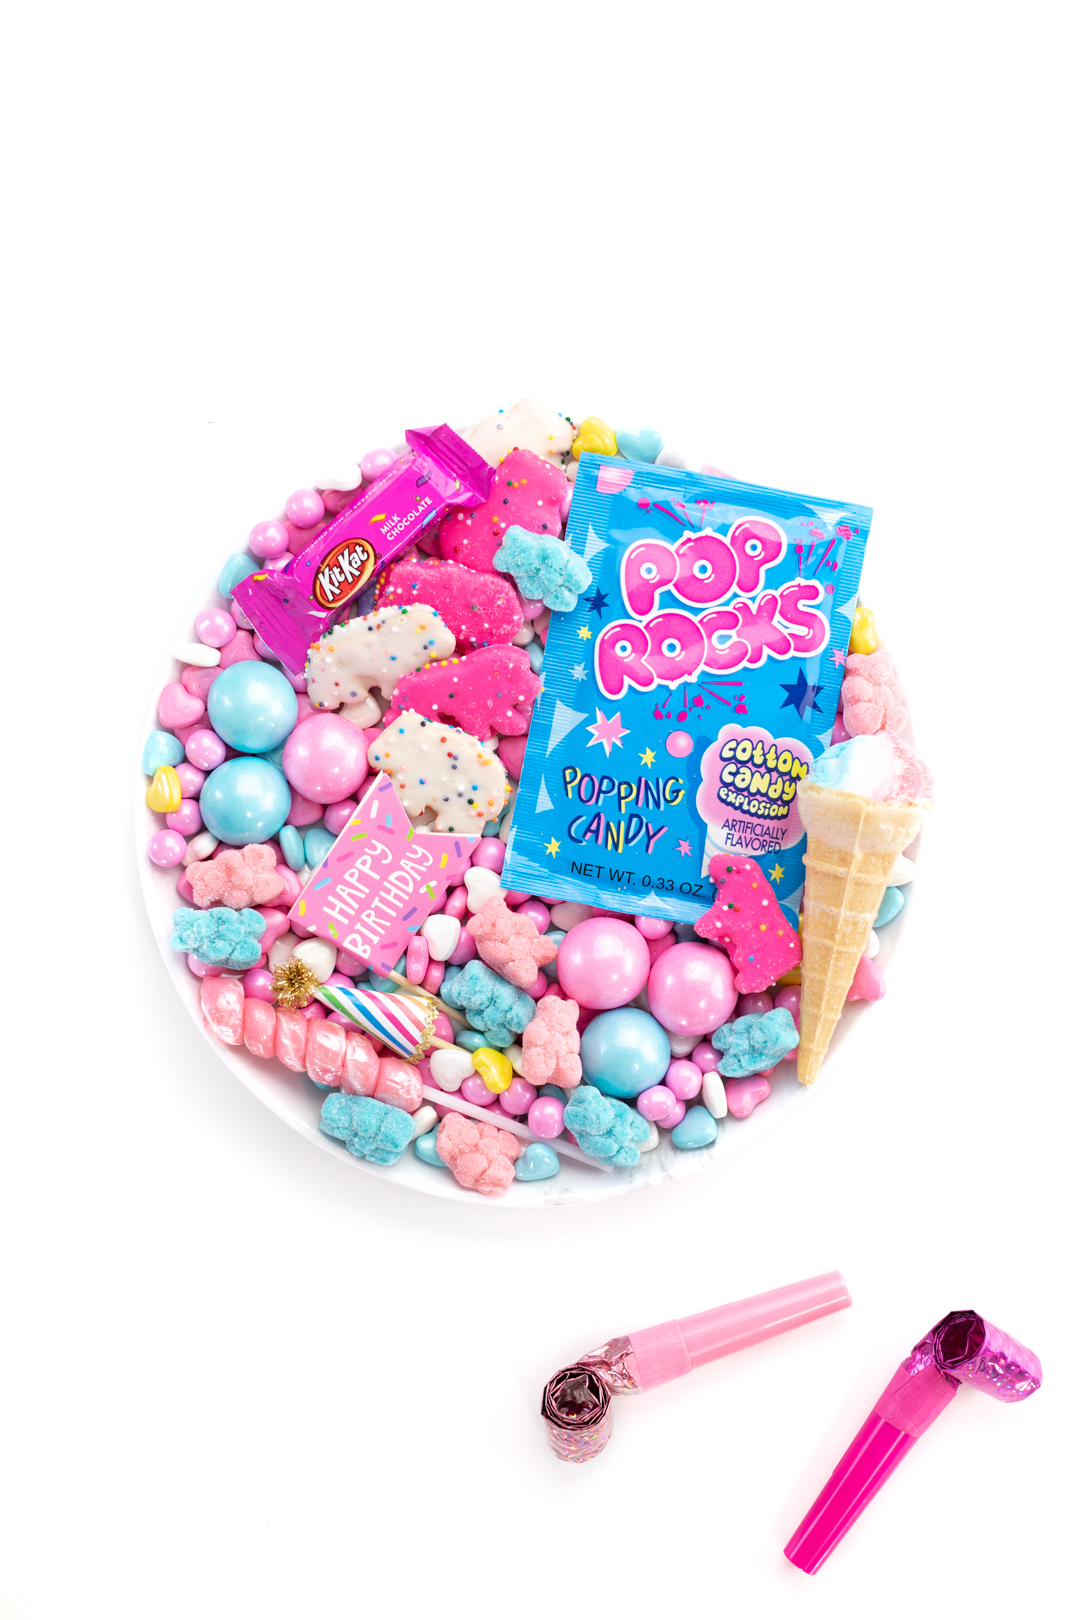 small candy board to celebrate birthdays with joy filled candy picks that are pink and blue.... classic birthday colors